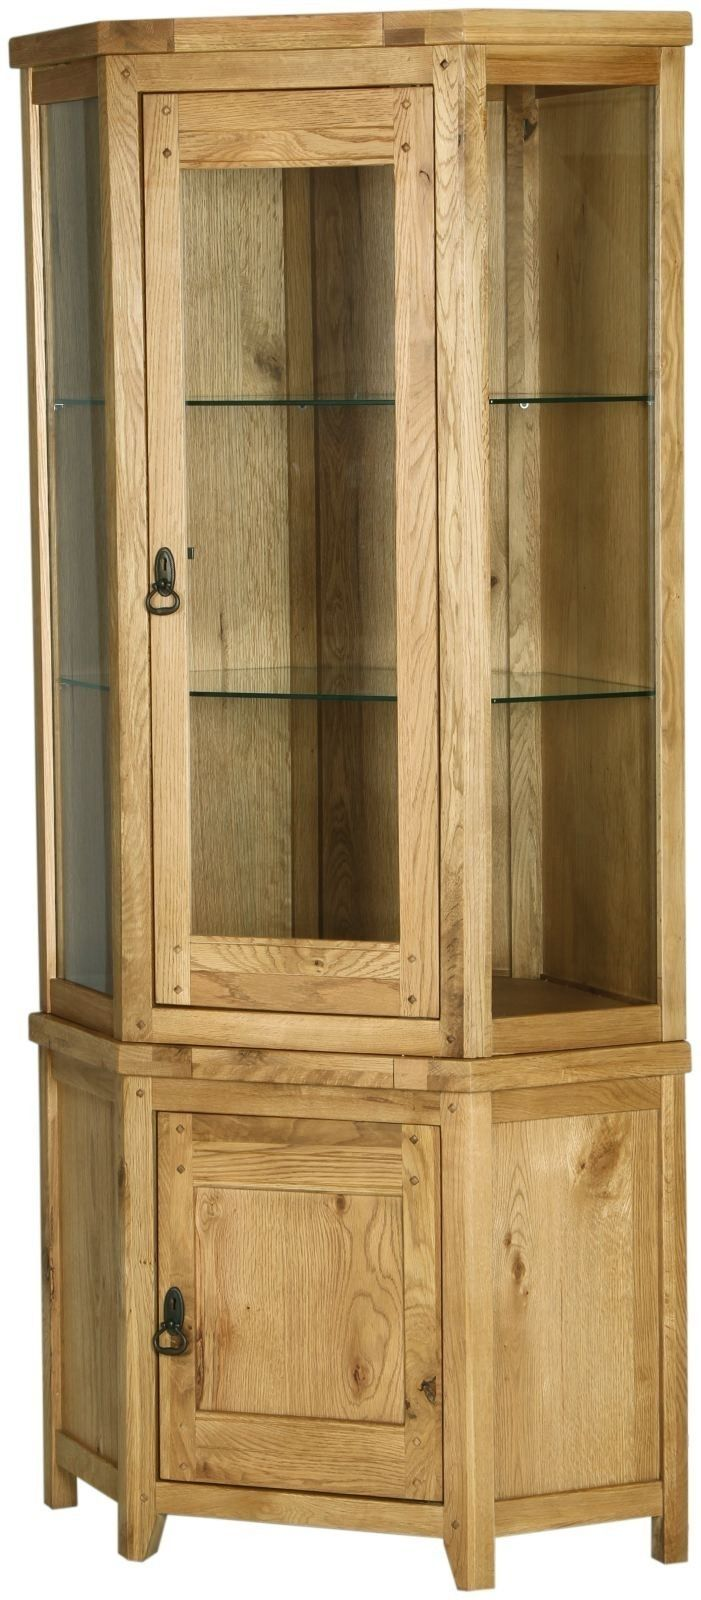 Genoa Solid Oak Furniture Glazed Corner Display Cabinet Stand Unit Magnificent Corner Cabinets Dining Room Furniture Design Inspiration